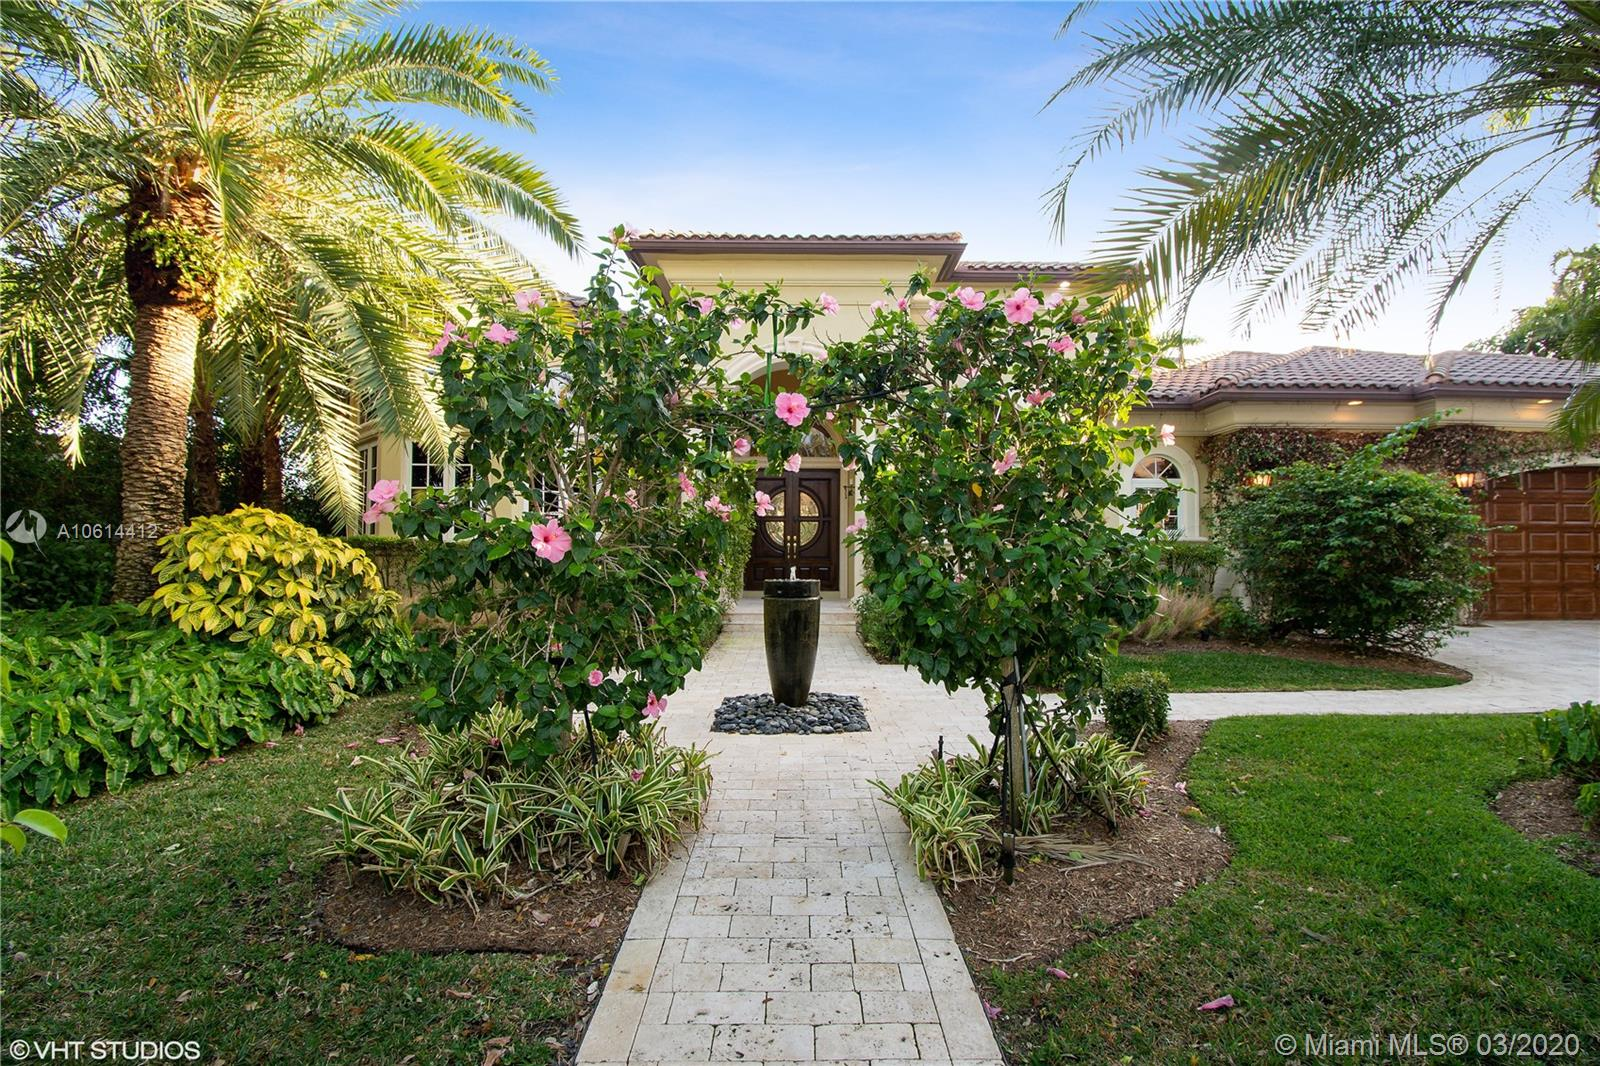 Most perfect floor plan. Rare one-story for such a large lot. Manicured hedges, Royal and Date palms... Built to highest quality and emanates Palm Beach elegance and warmth. Built and designer decorated with attention to every detail. 4 Bdrms plus an office. Built in 2002. Walls of Impact Glass invite you to the beautiful outdoor living area, extensive covered areas, pool w/heated spa, canal is 120' and ICW views from backyard. Master suite and handsome office to one side and 3-guest bedrooms to the right of the home. 13' and 15' ceilings, finest quality finishes, millwork, crown molding and craftsmanship. Saturnia marble floors throughout, propane gas, Thermador appliances. 100x125 lot. Third from the point and desirable South exposure. Dock accommodates up to 80' boat. Gently lived in.